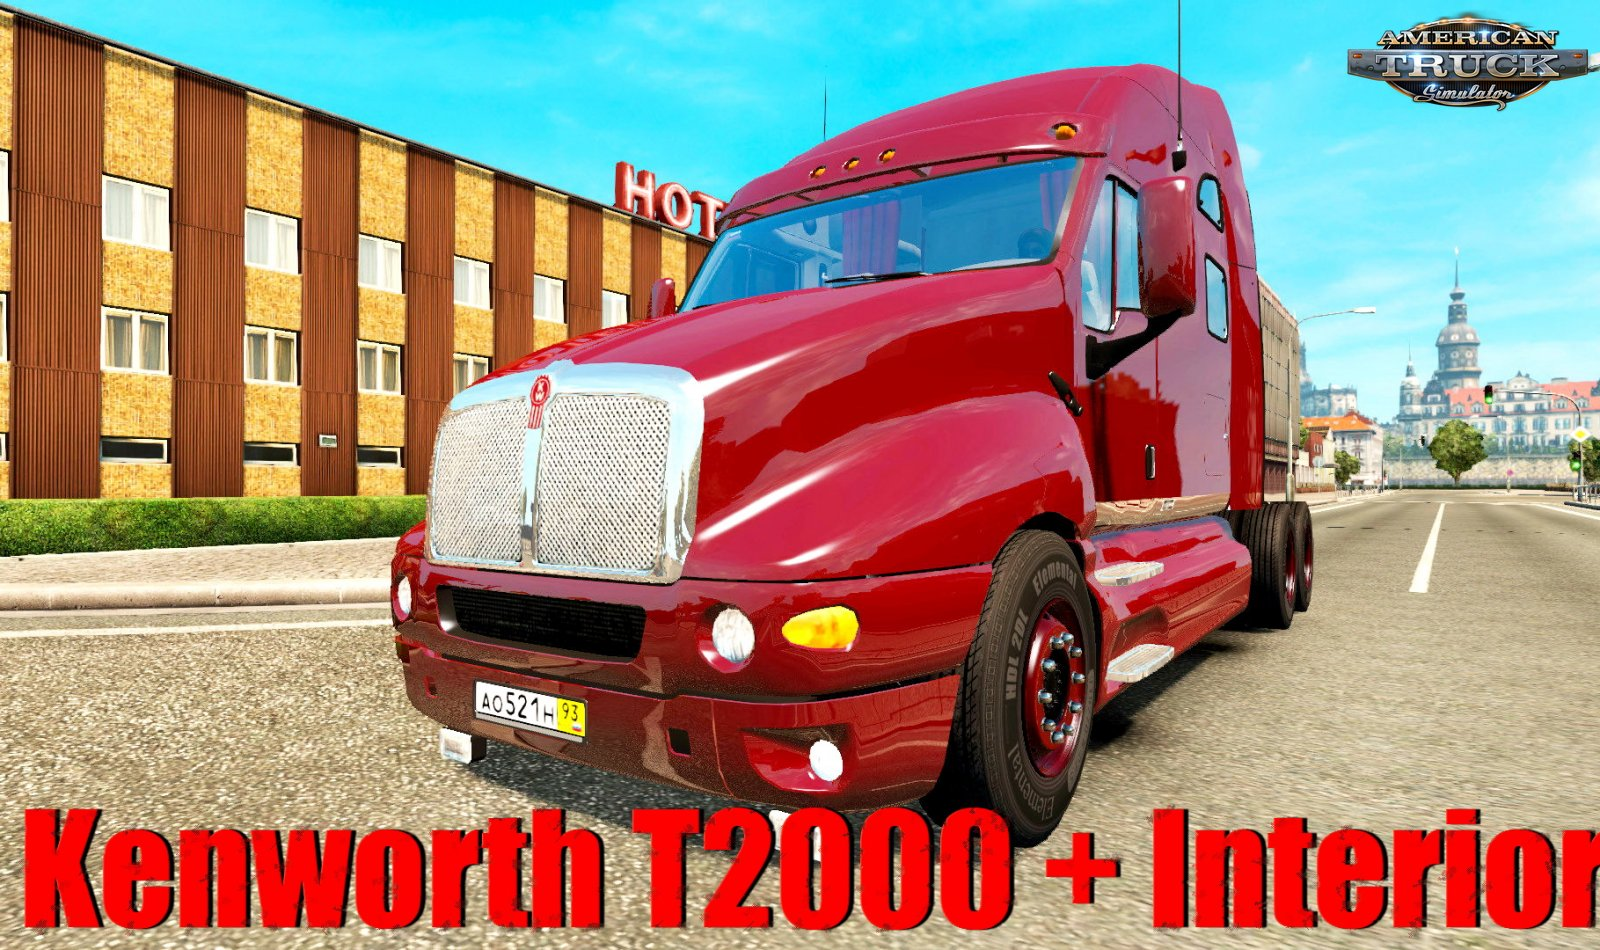 Kenworth T2000 + Interior v1.1 (1.35.x) for ATS